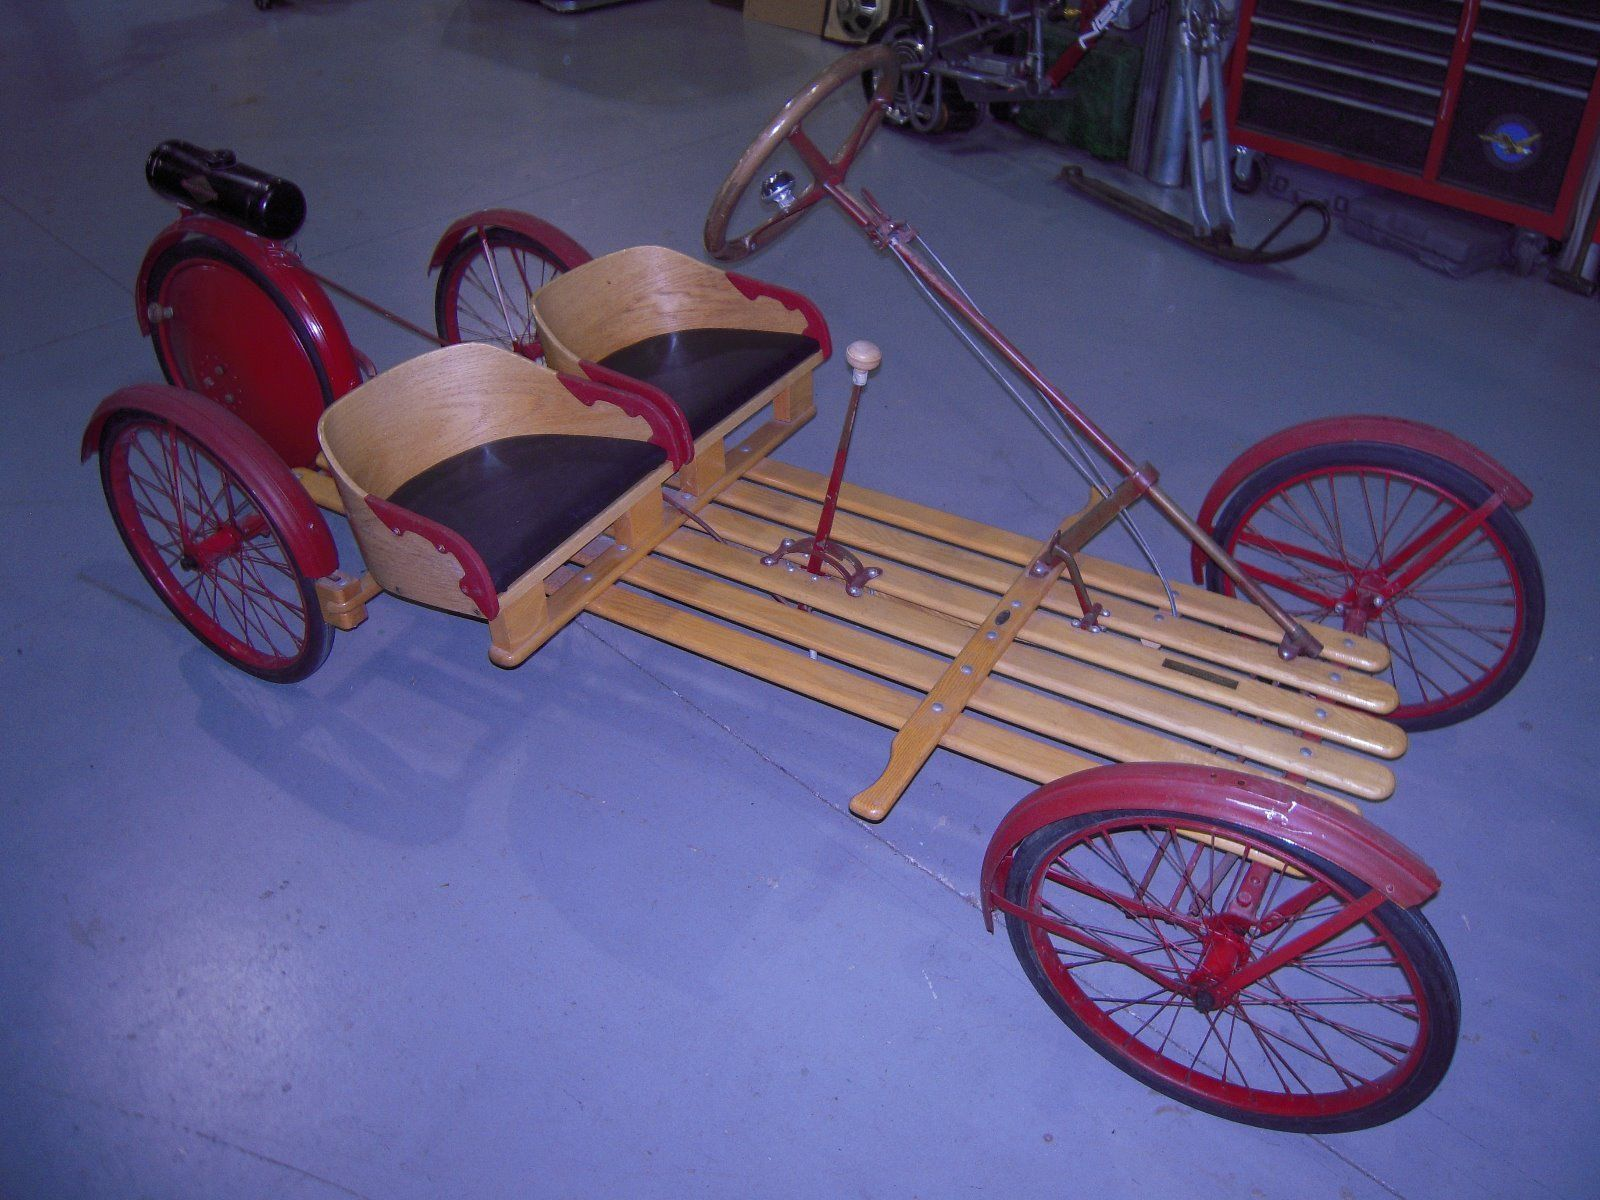 bangshift com 1920 briggs and stratton flyer there s a 1920 briggs and stratton flyer for cheapest car in